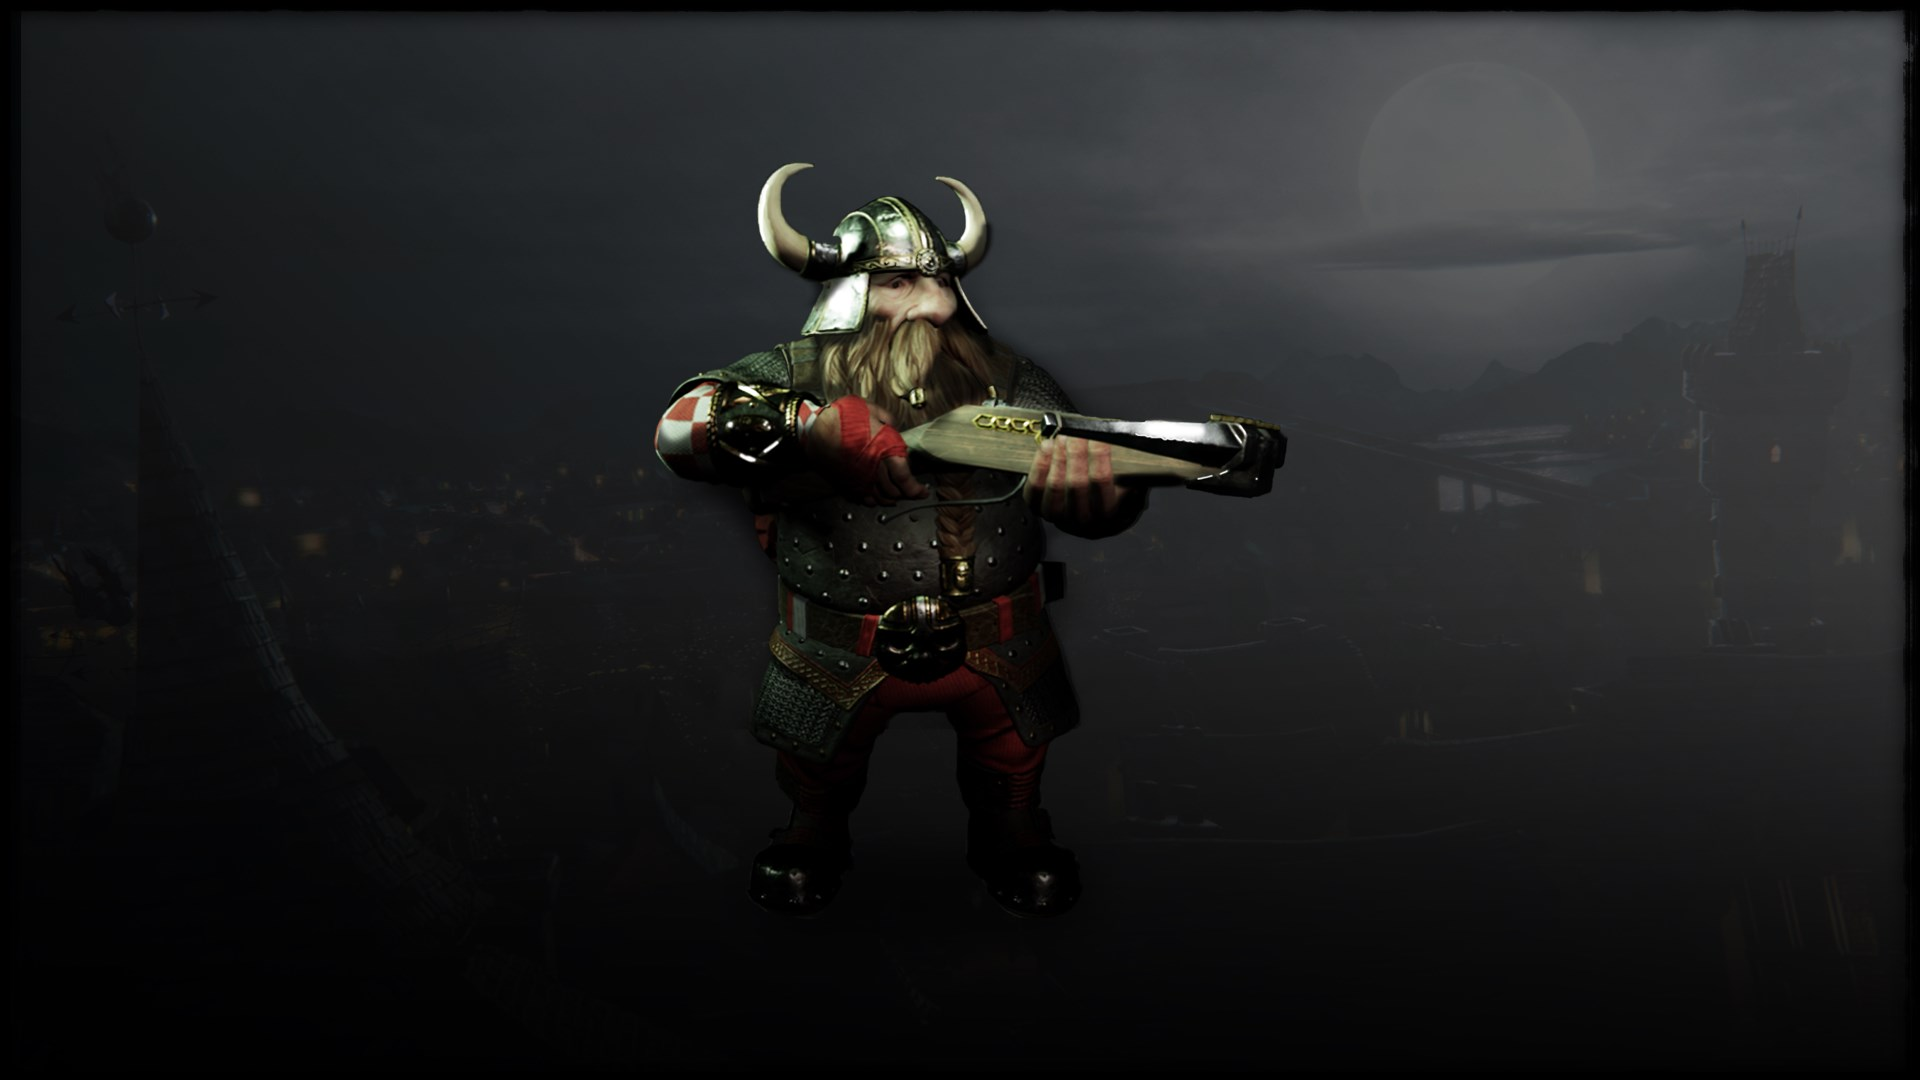 Warhammer Vermintide - Bardin 'Studded Leather' Skin